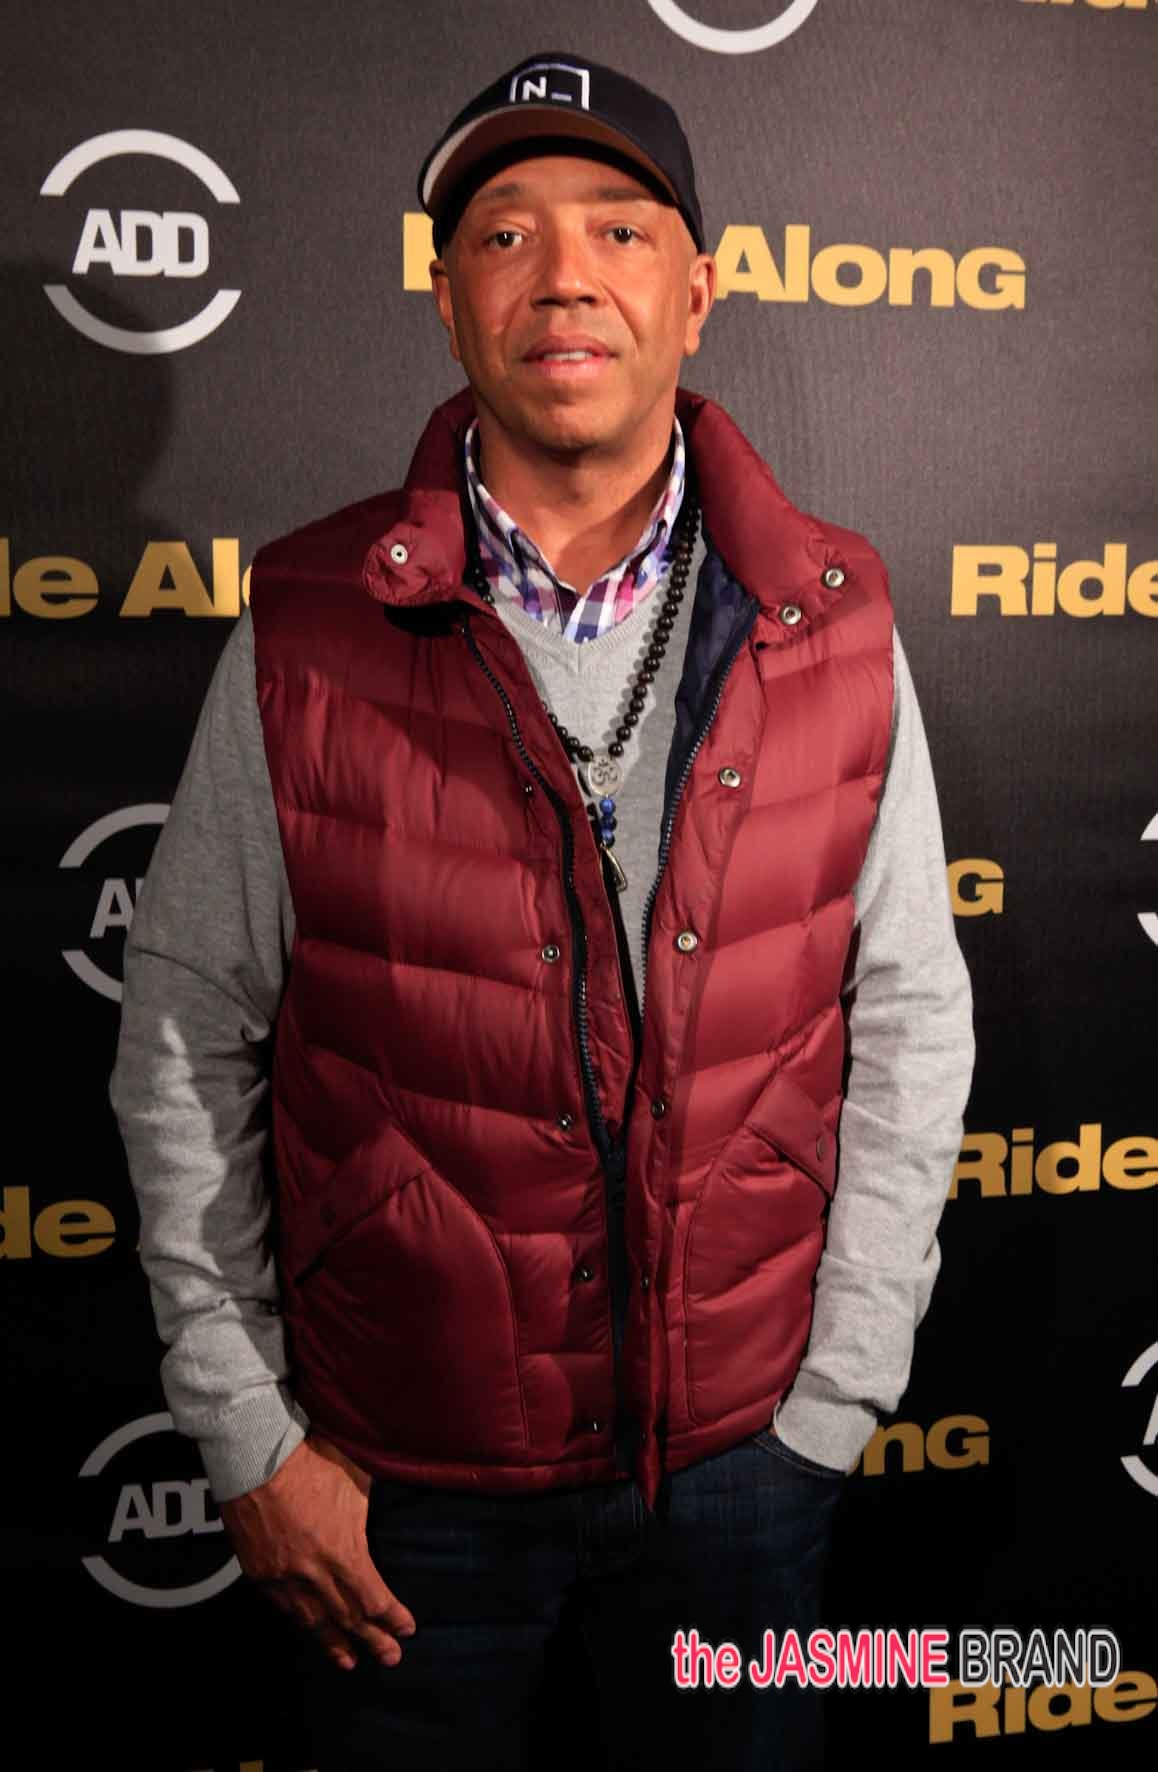 Russell Simmons-ride along premiere-the jasmine brand